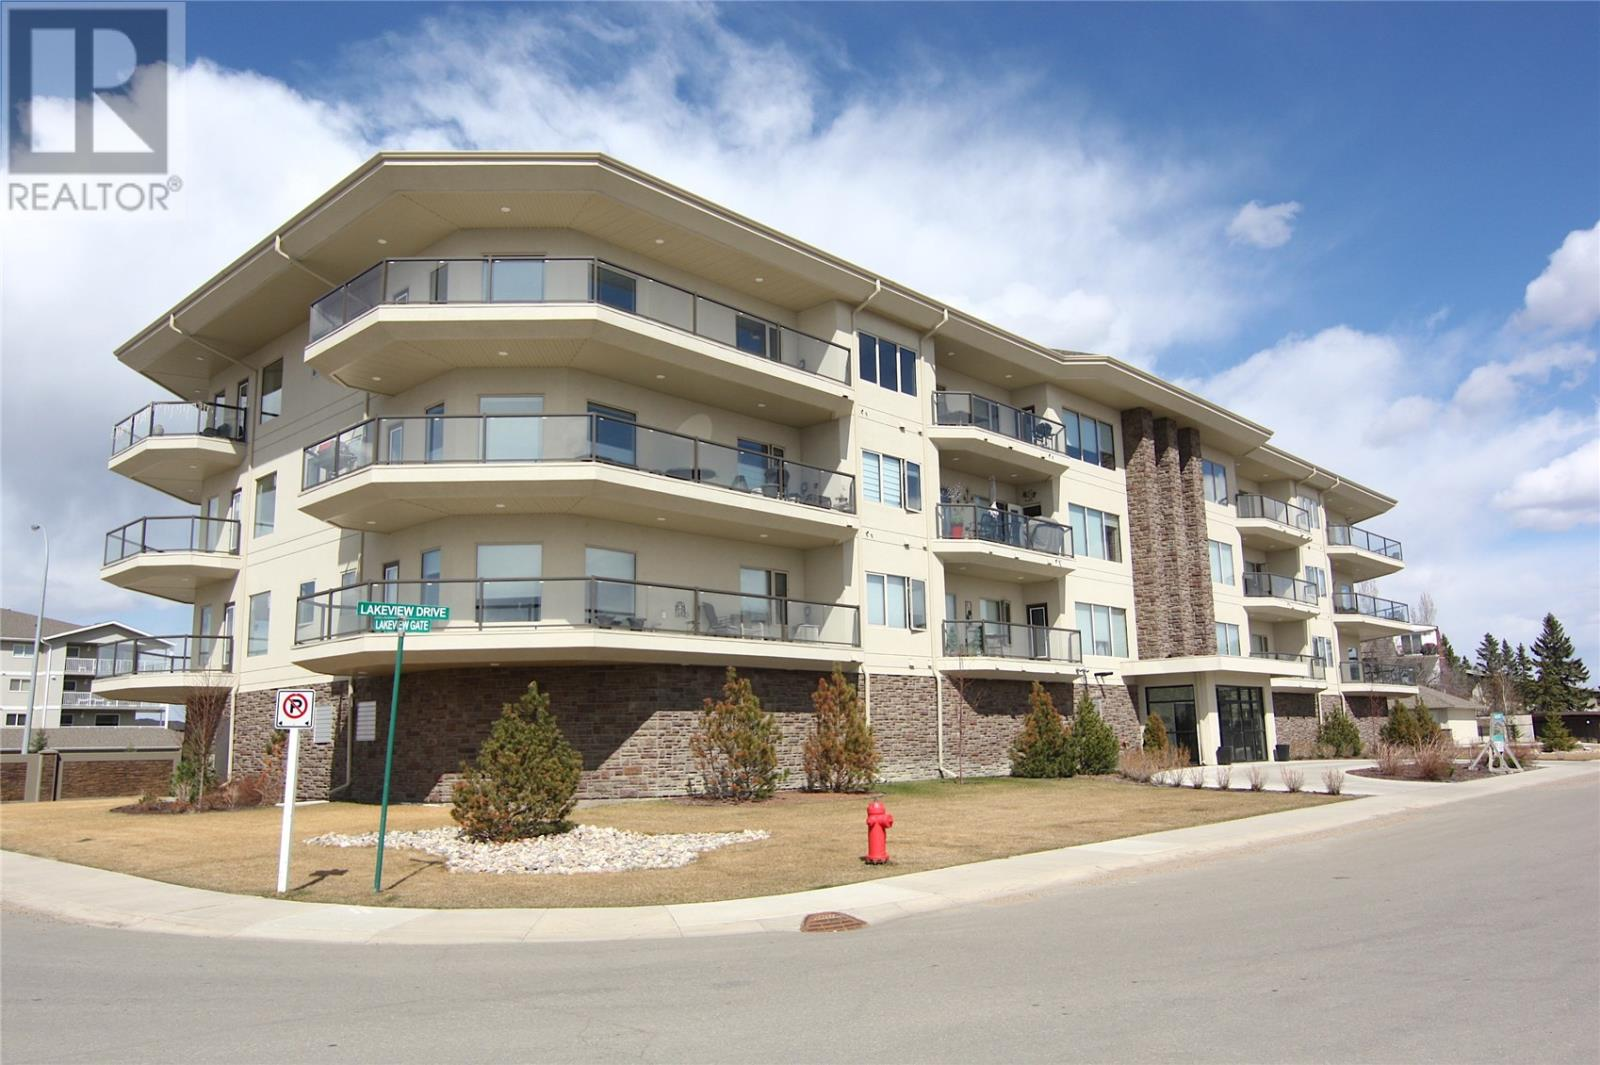 Buliding: 2800 Lakeview Drive, Prince Albert, ON